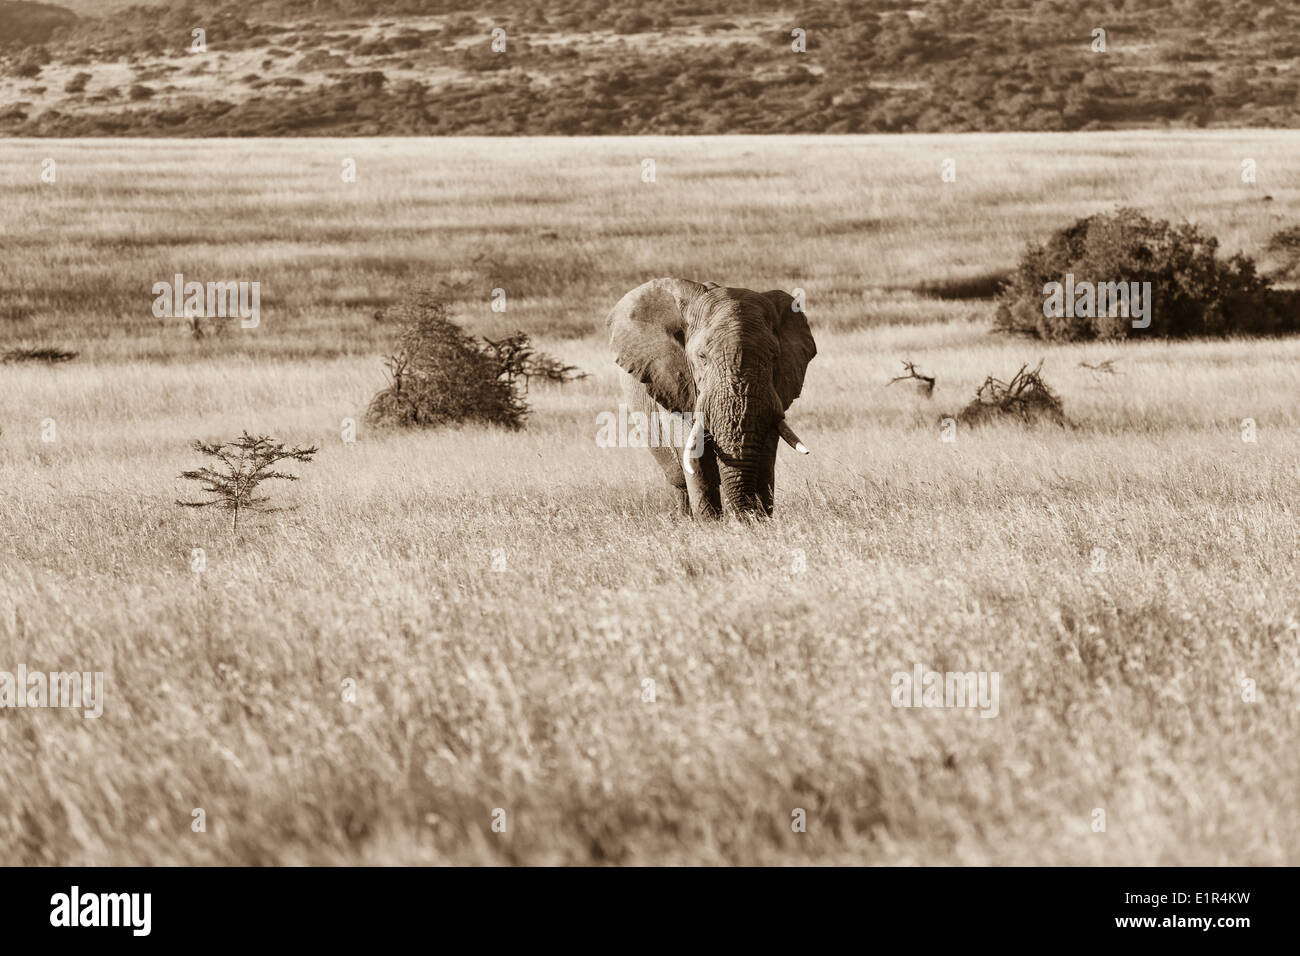 Bull Elephant animal crossing grassland wildlife reserve plateau in sepia tone vintage photo - Stock Image